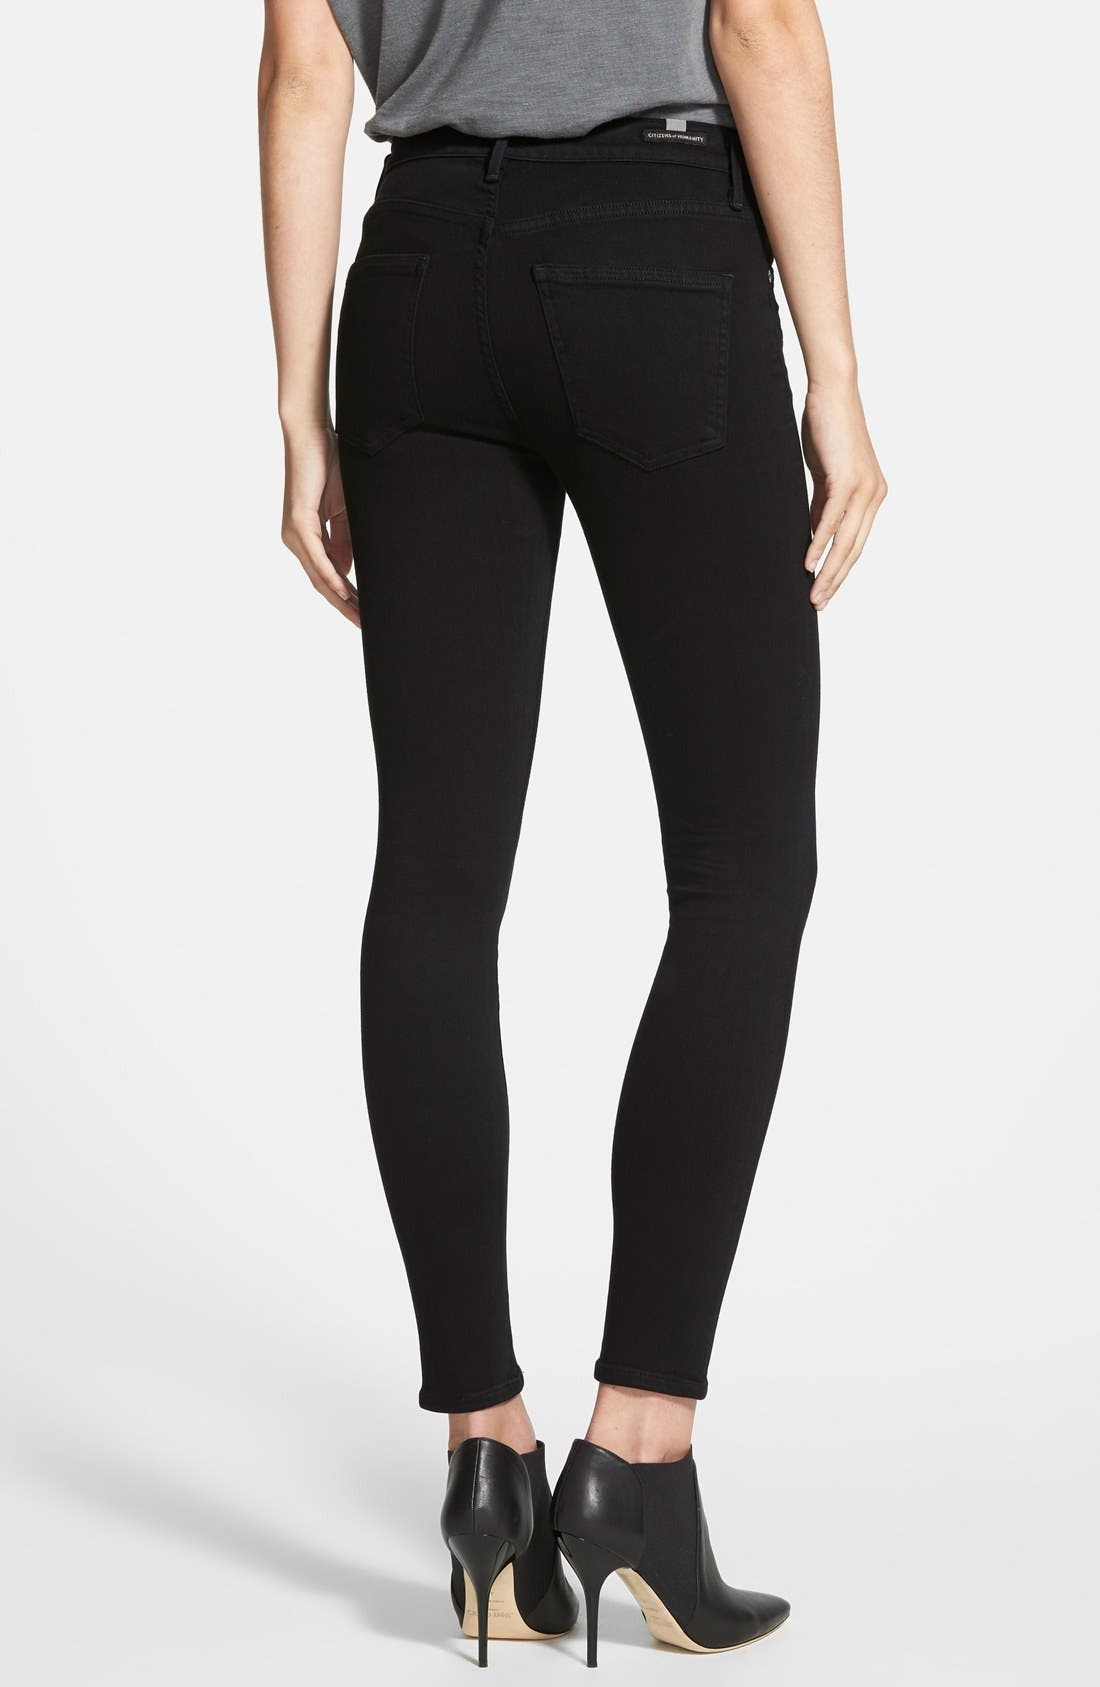 'Rocket' High Rise Skinny Jeans,                             Alternate thumbnail 2, color,                             Axel